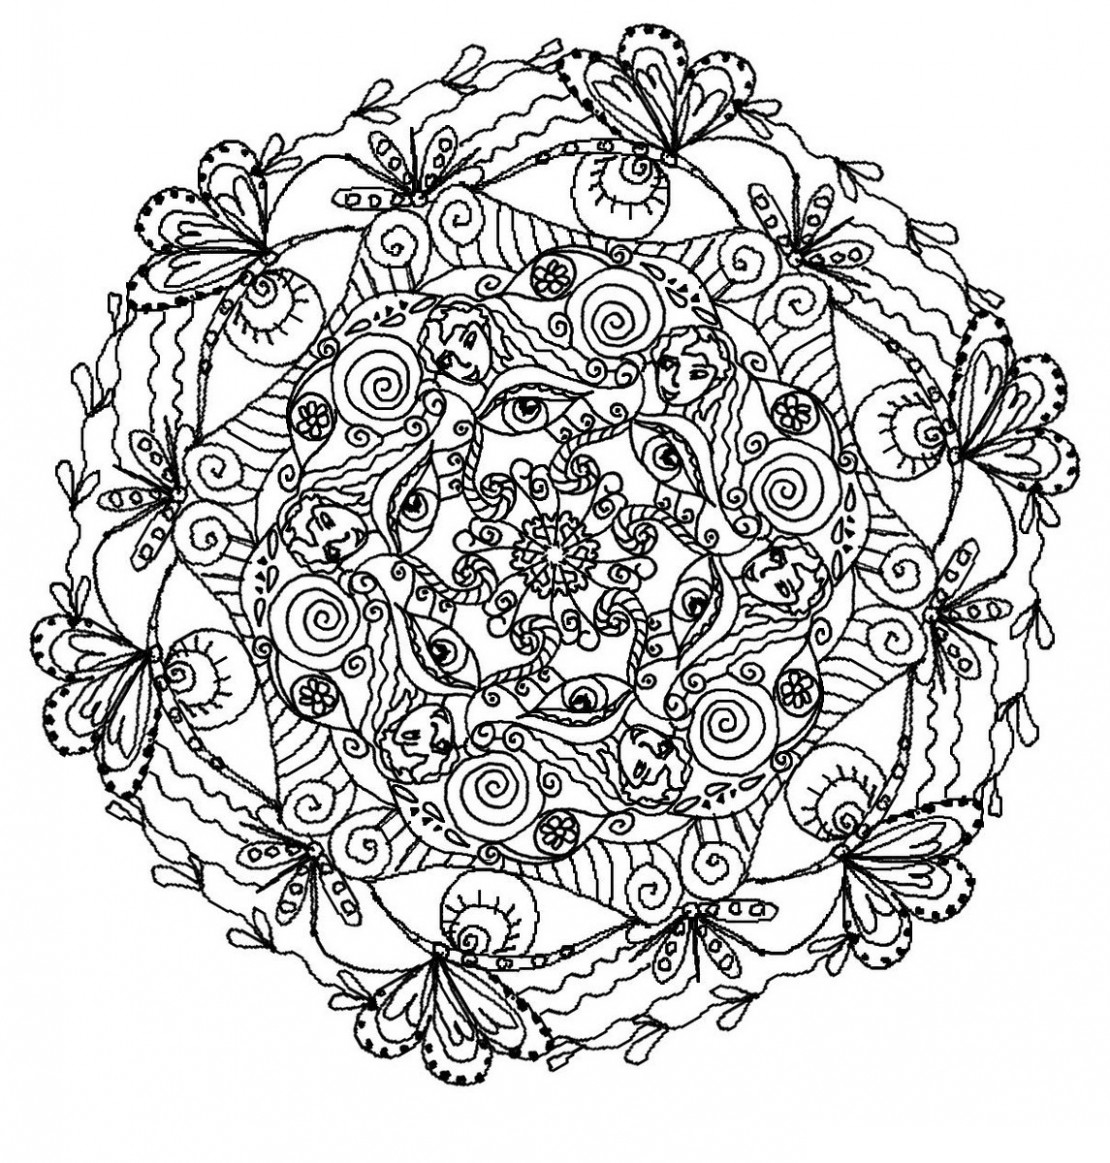 Printable Adult coloring page to print and color for free